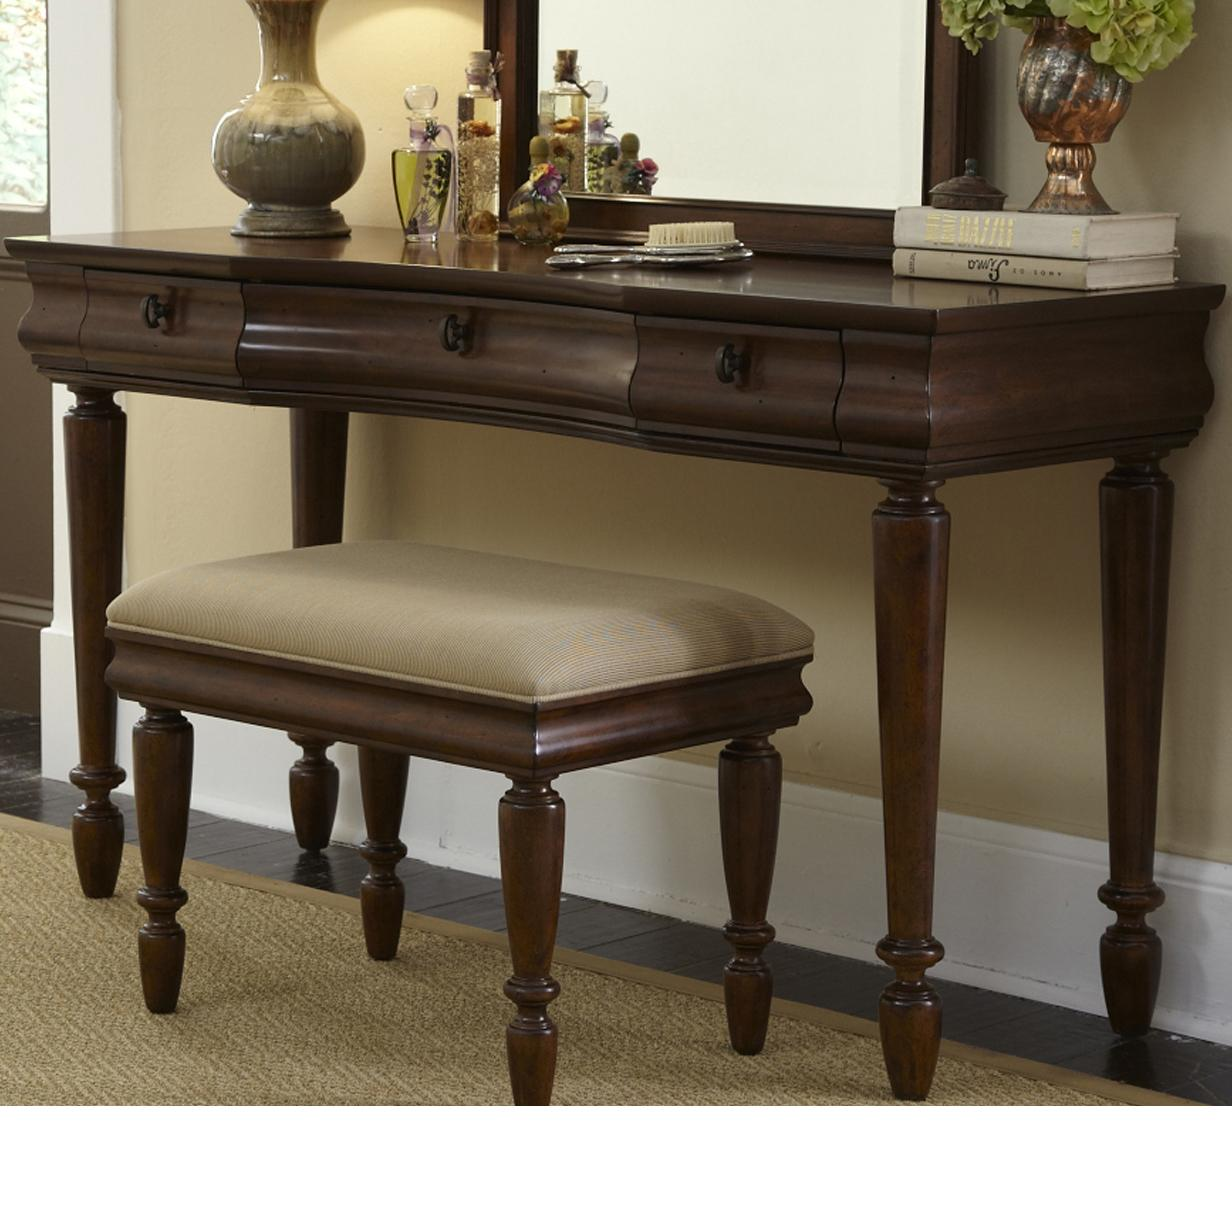 Sarah Randolph J Rustic Traditions Vanity Bench With